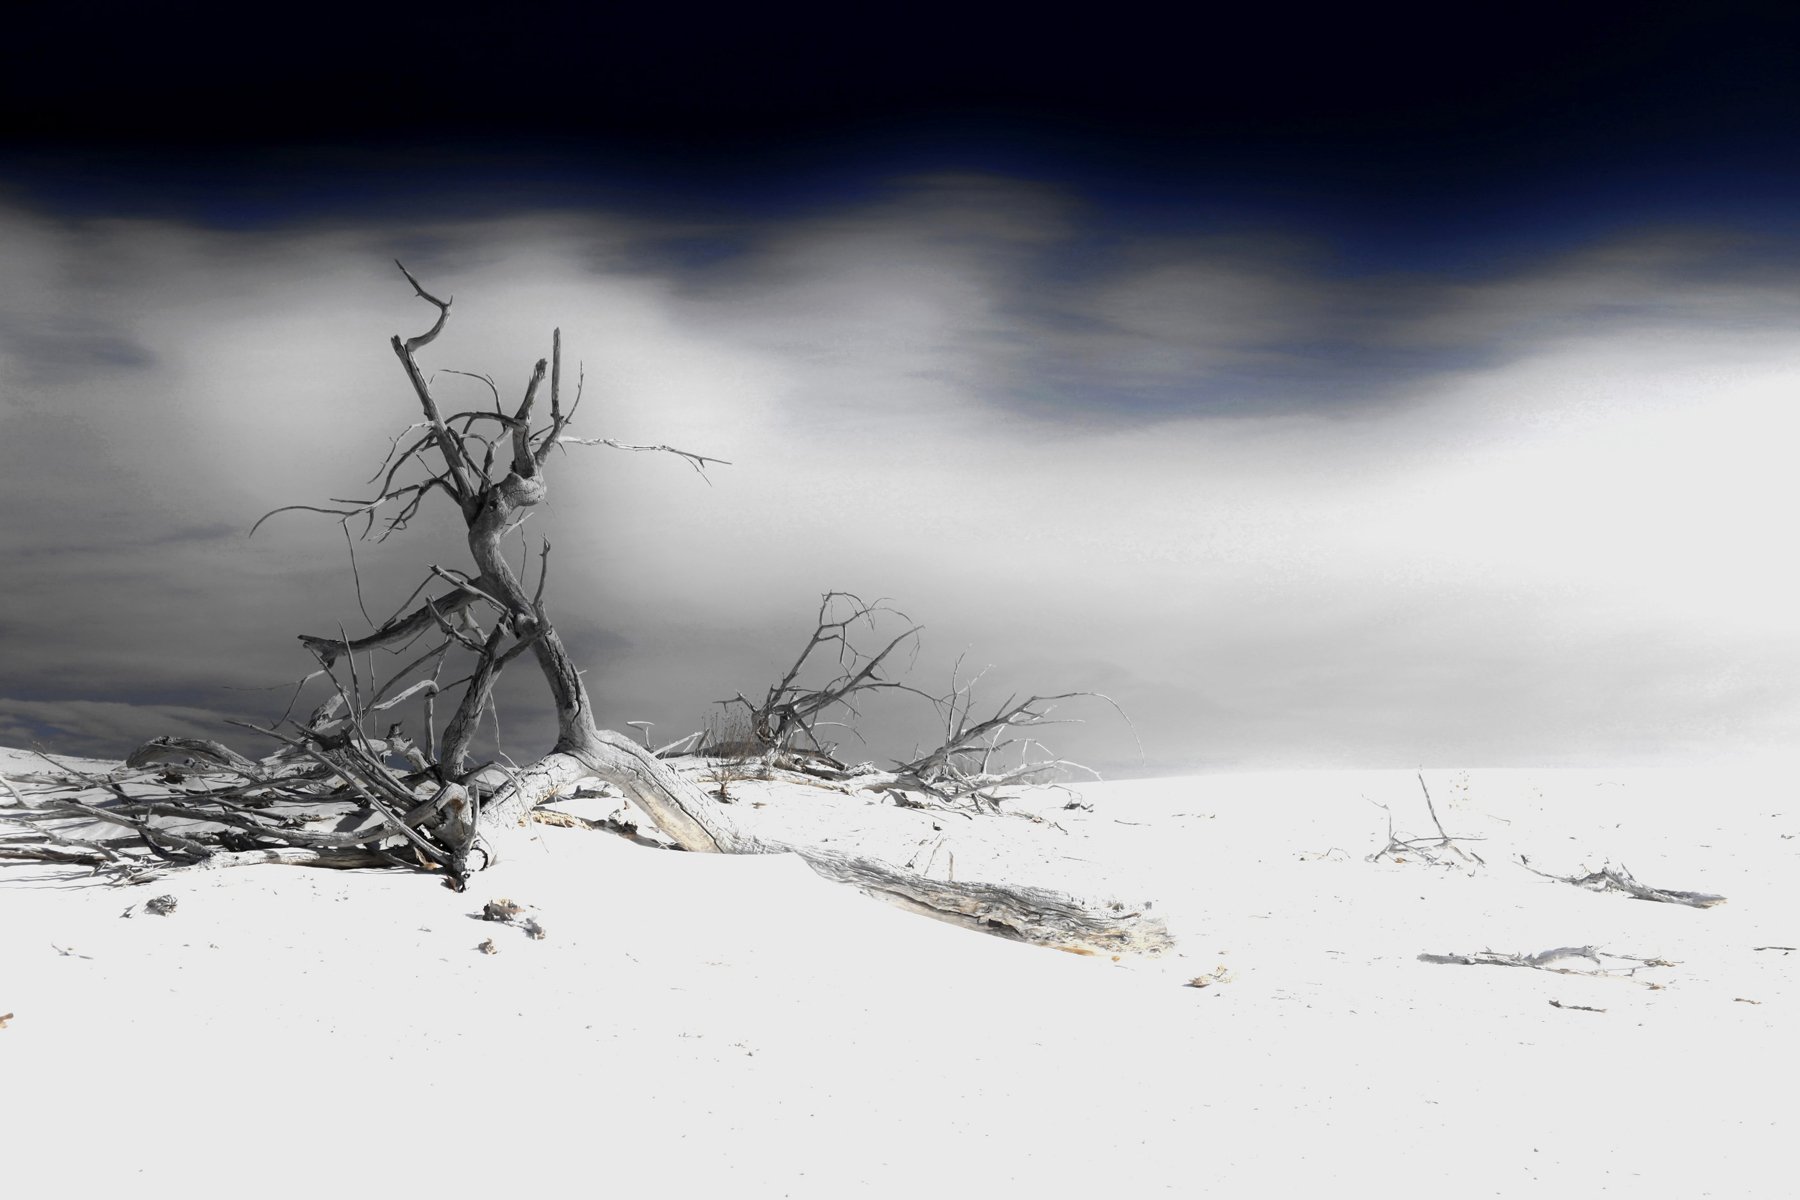 """Blue Loneliness"" by Fabrice Poussin (desert image with bare branches"